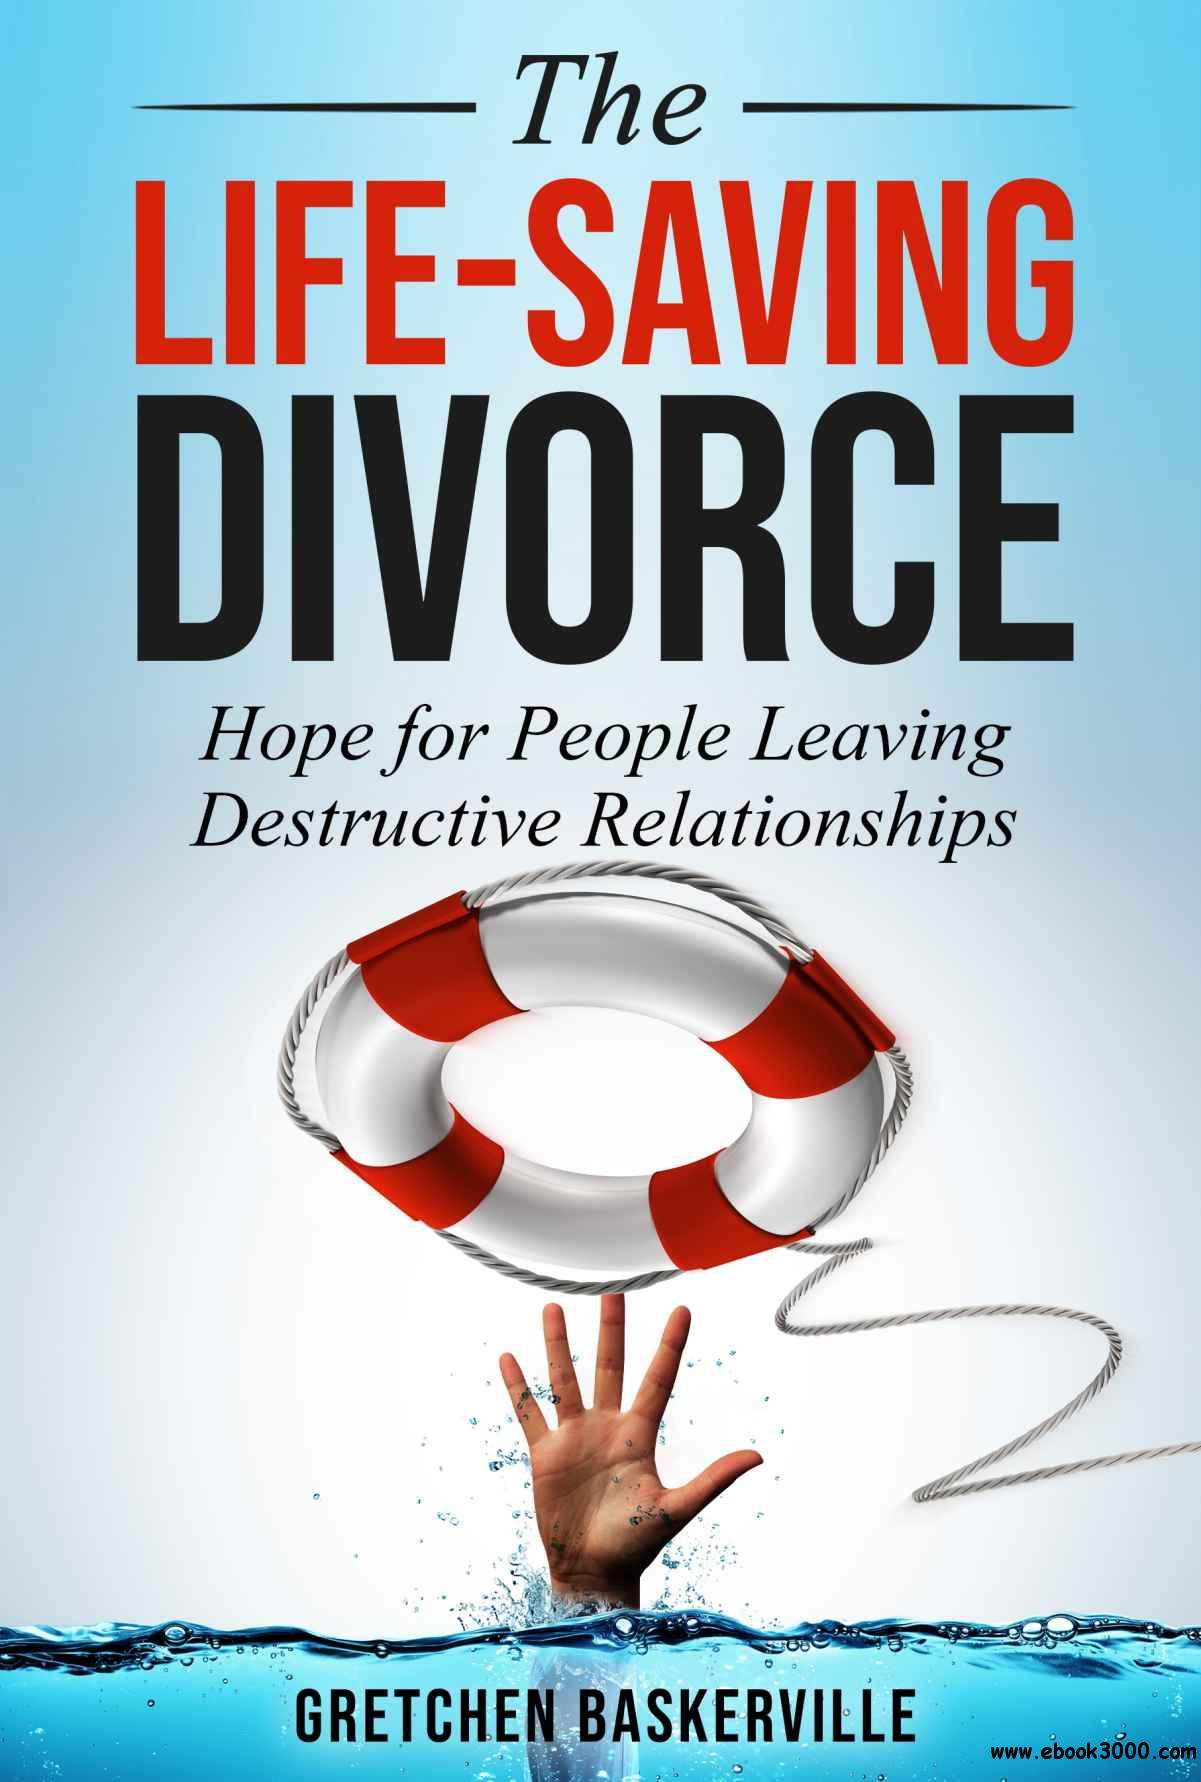 The Life-Saving Divorce: Hope for People Leaving Destructive Relationships